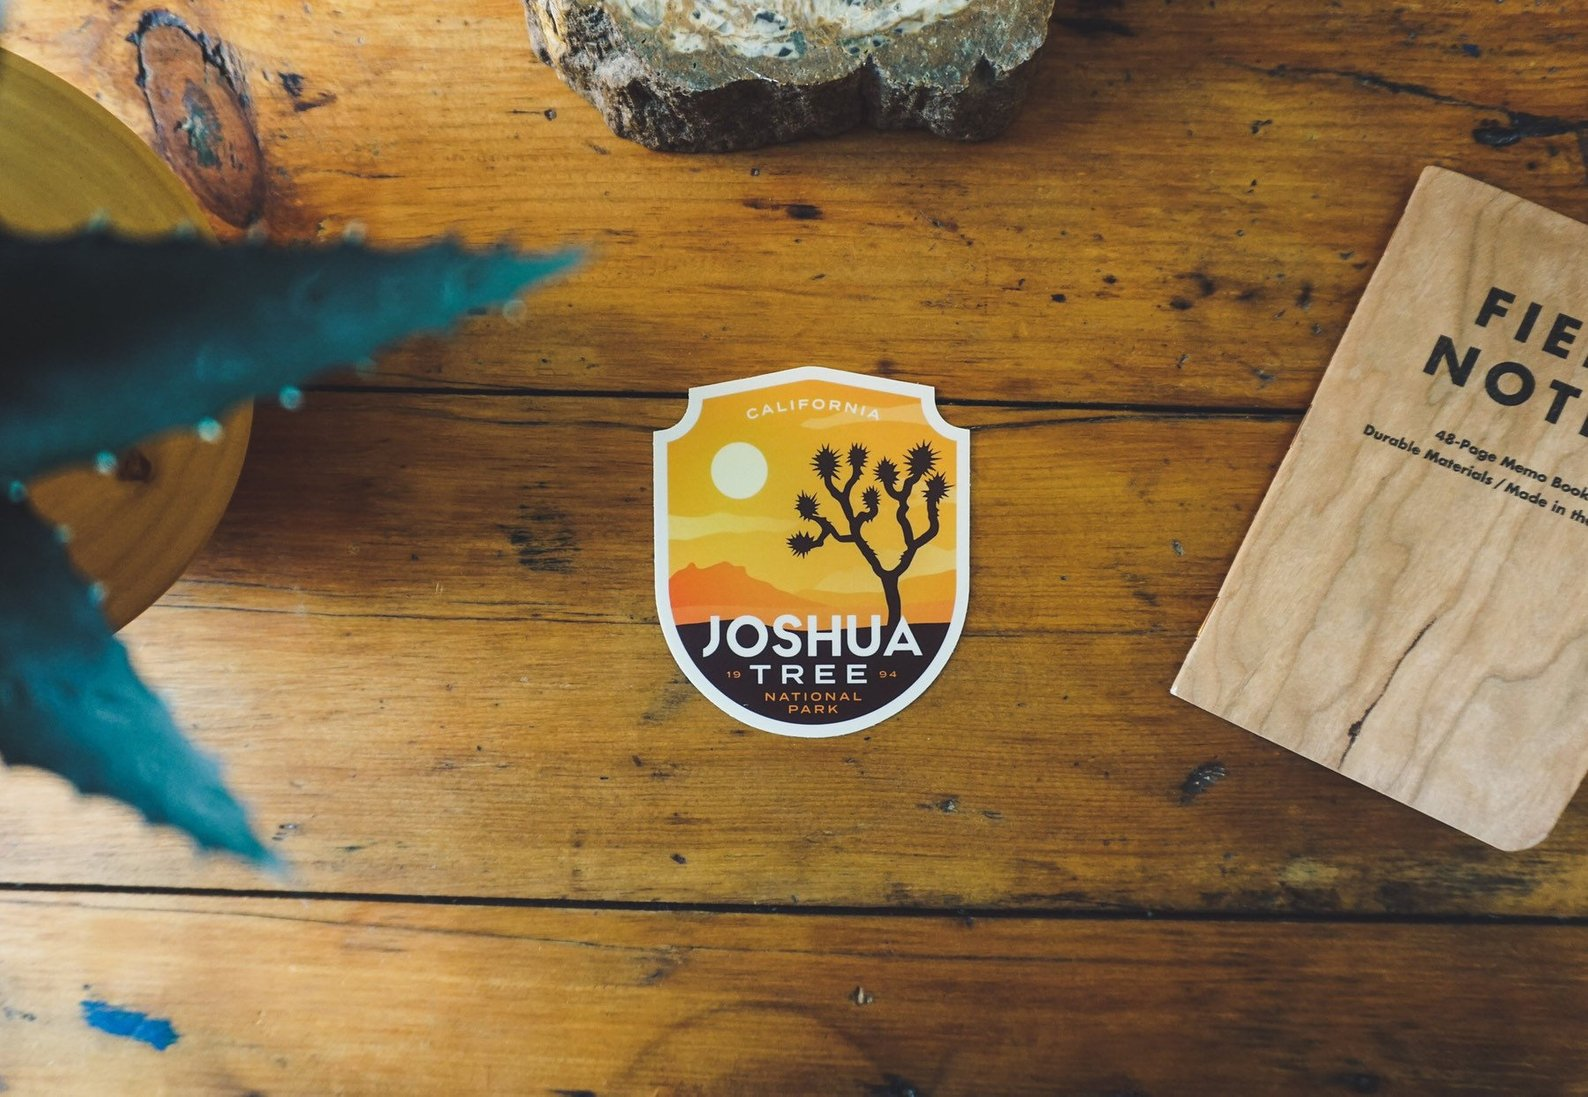 Joshua Tree National Park Sticker By Eiman Design Co